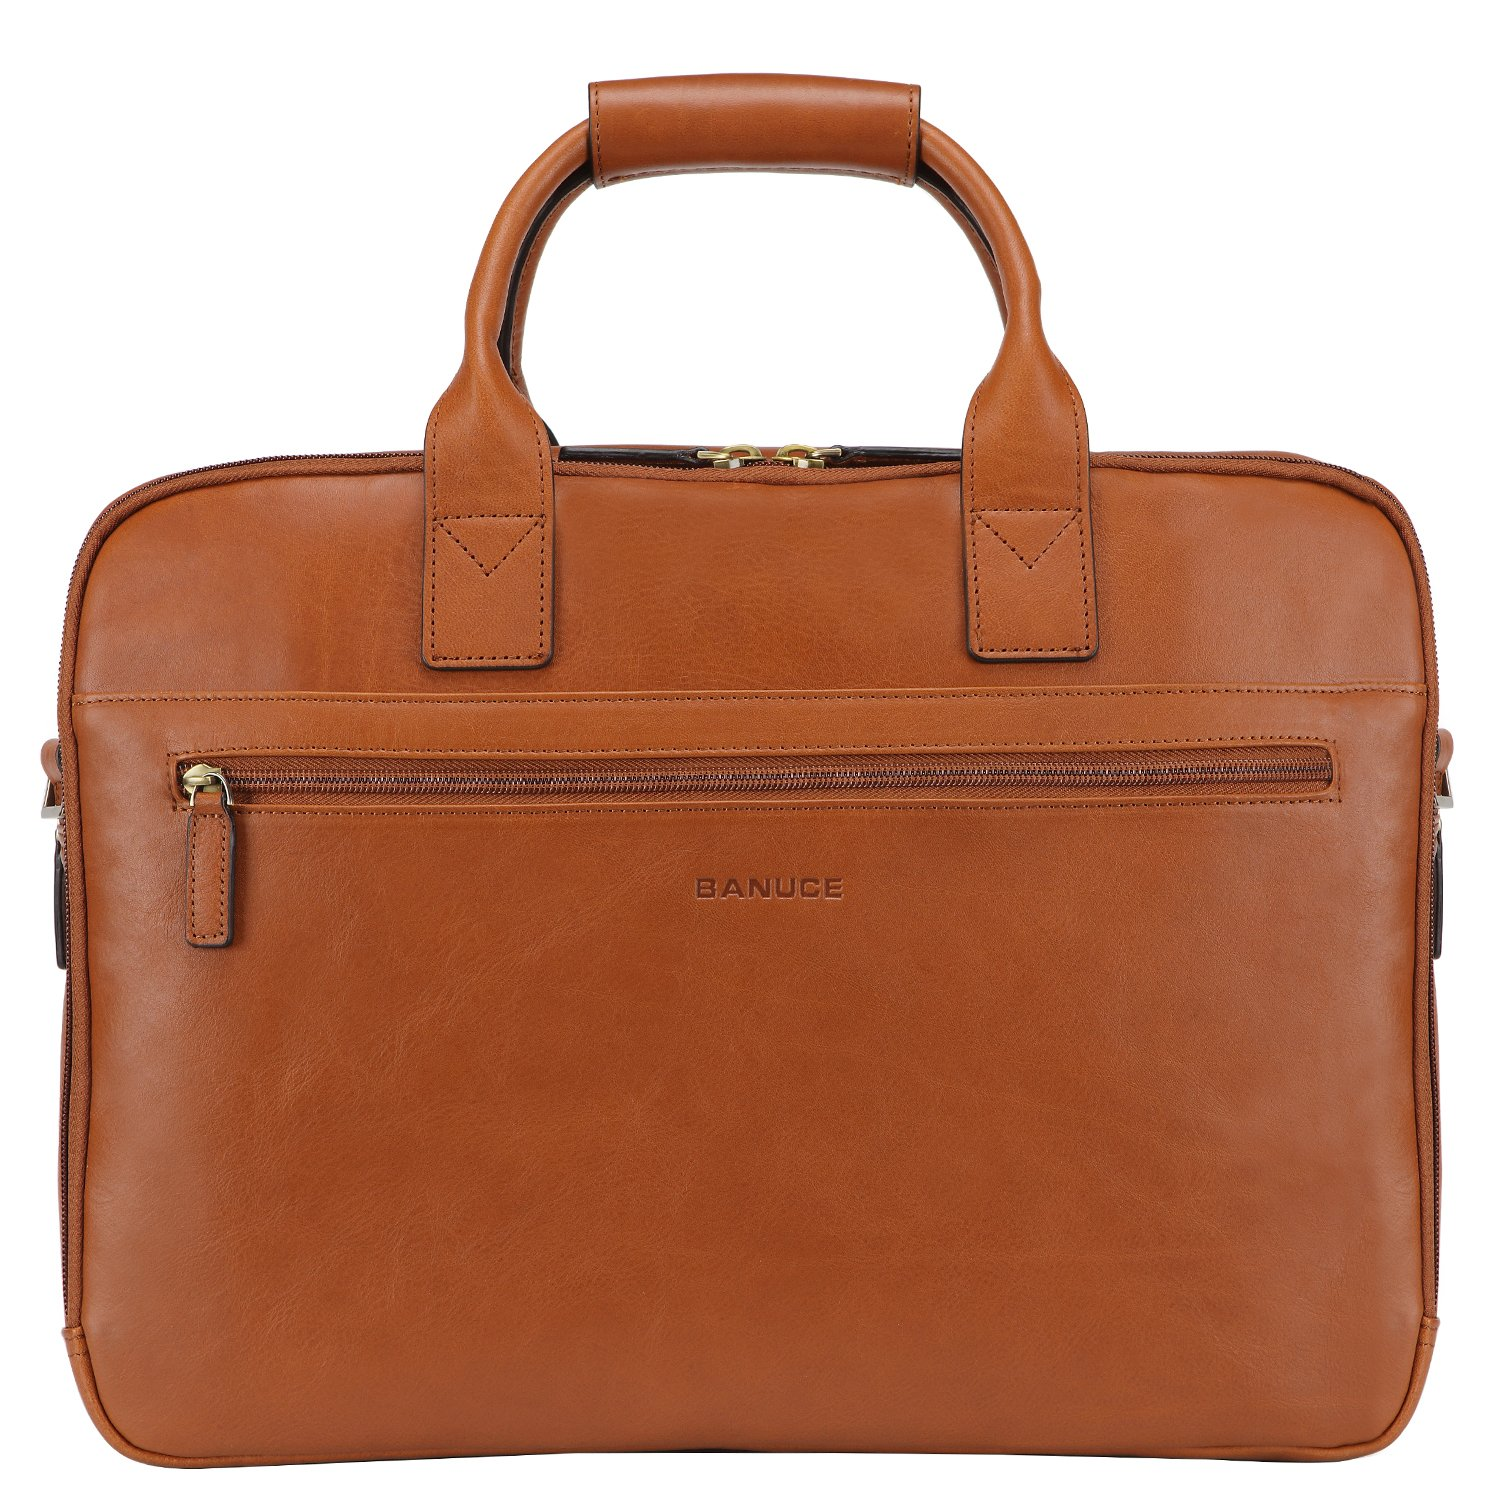 Banuce Italian Leather Tote Briefcase Business 15 inch Laptop Bag Color Beige